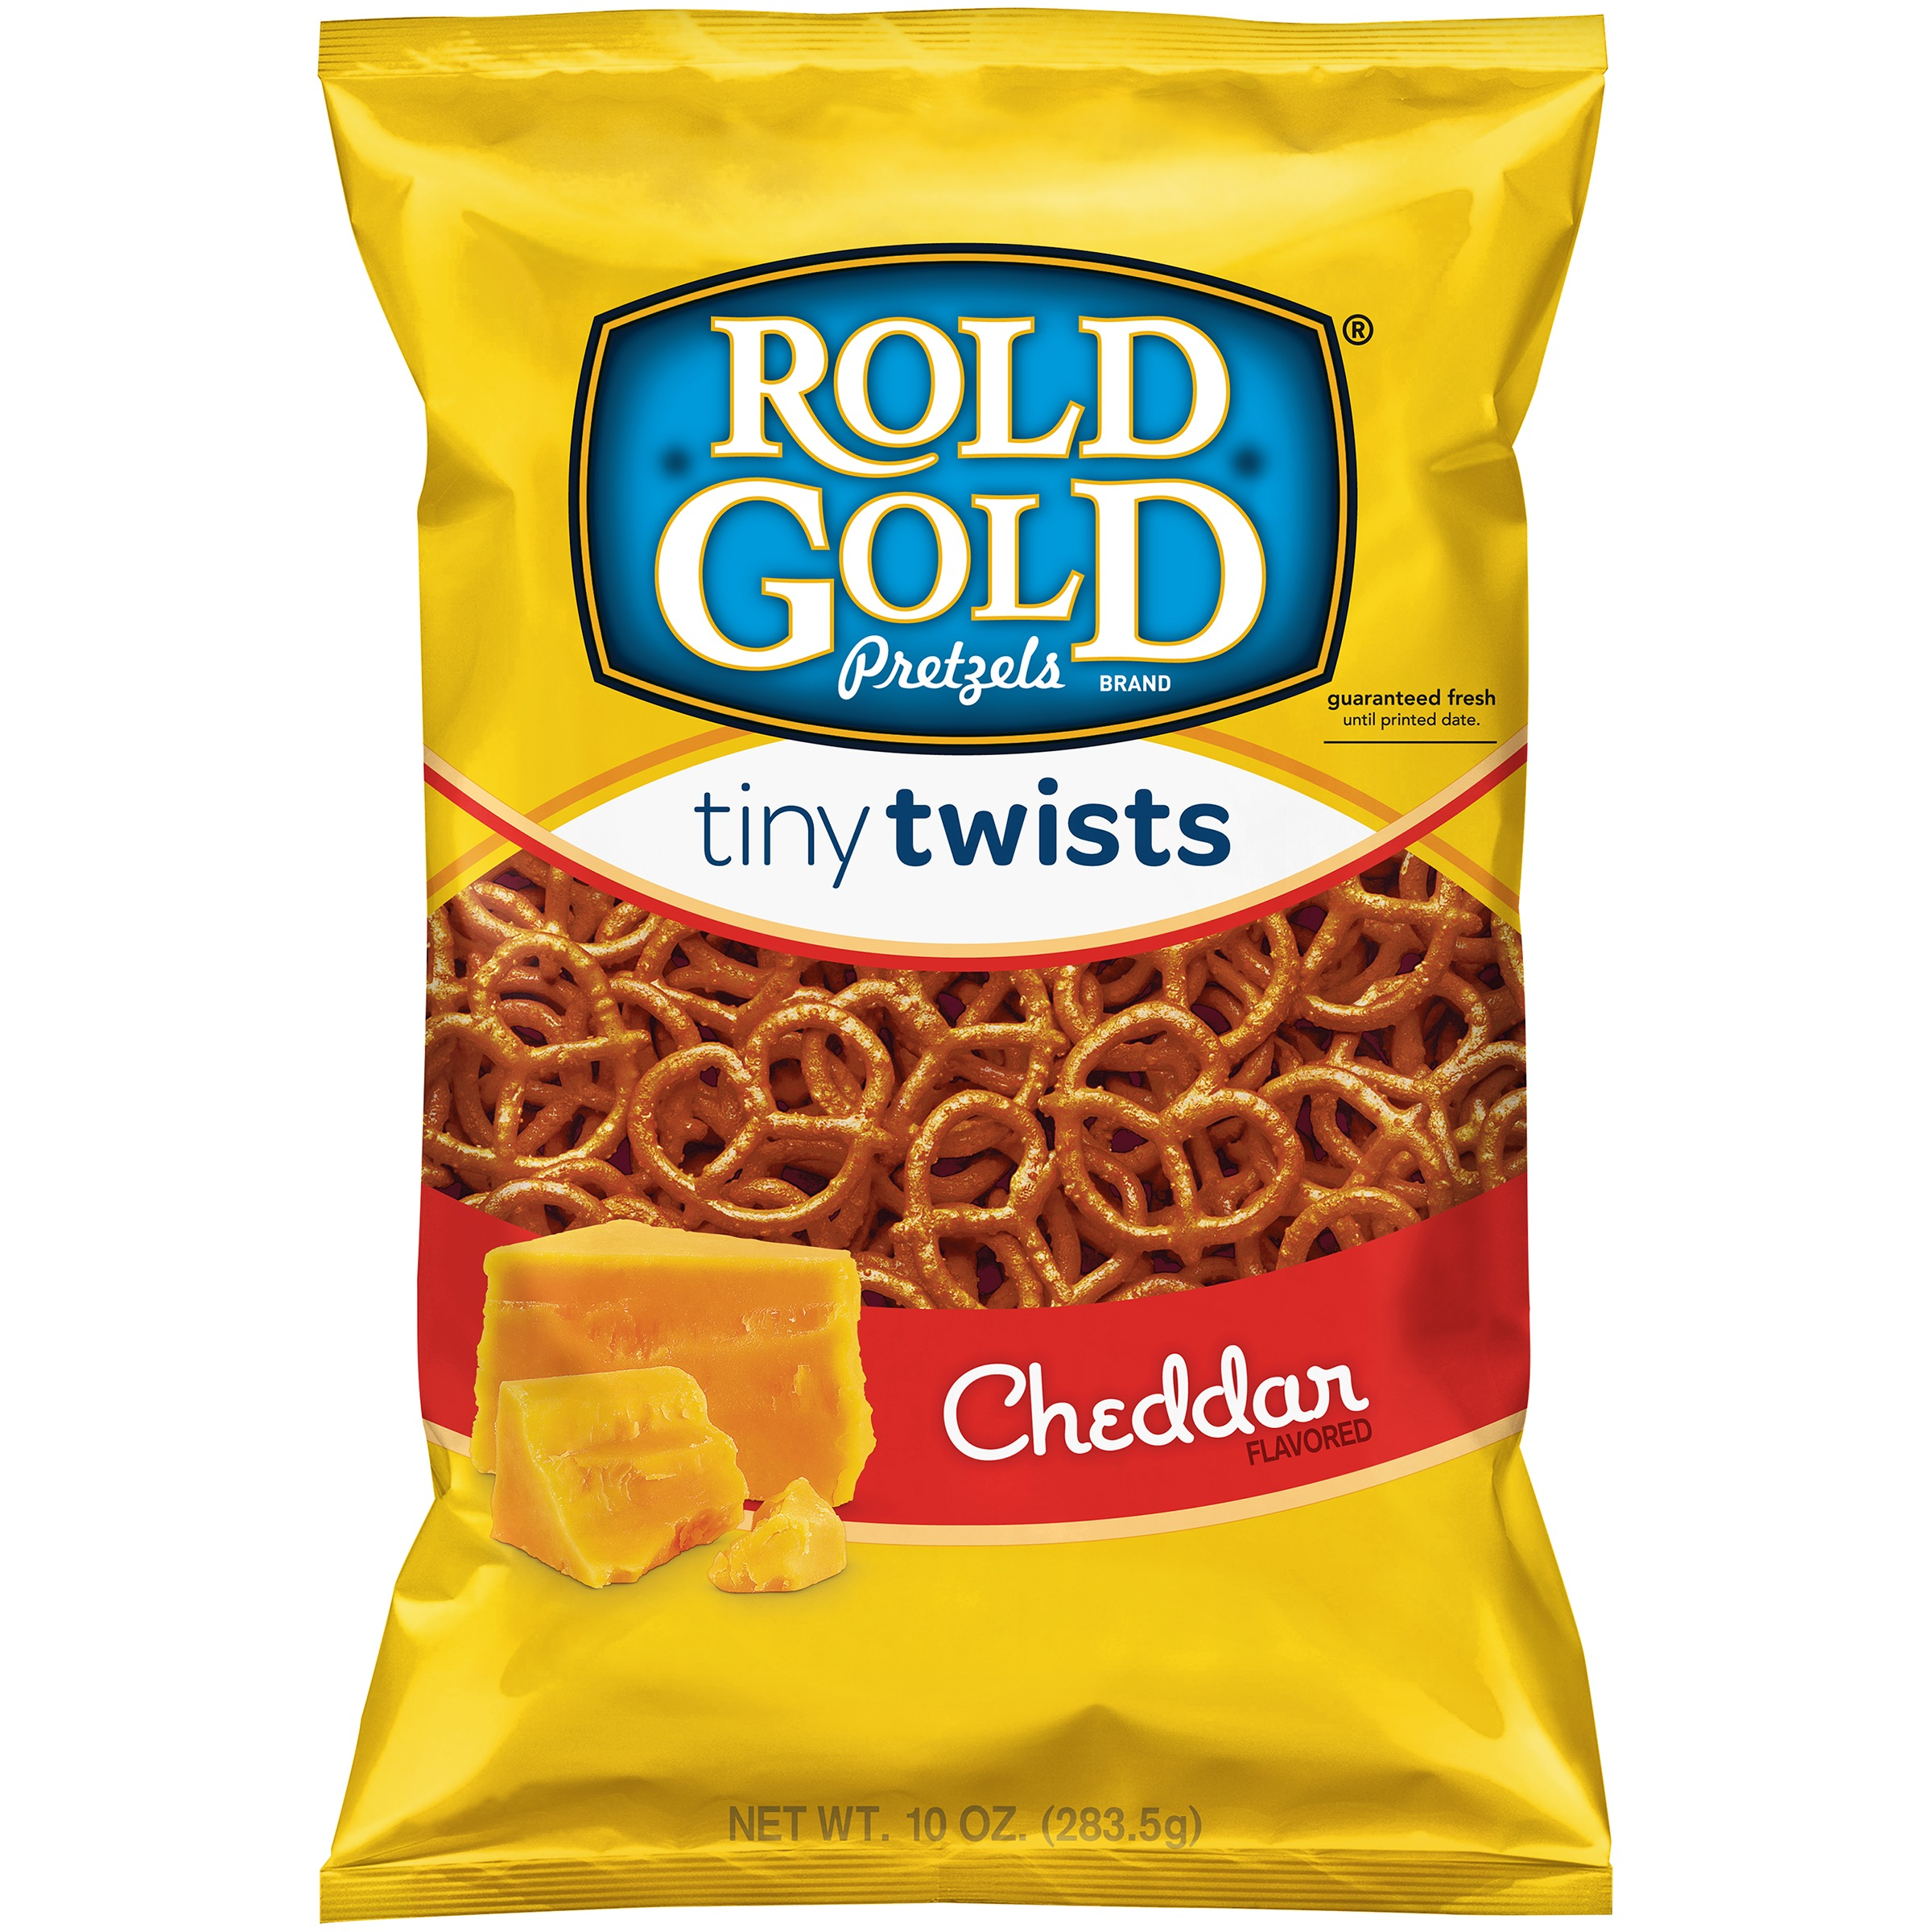 Rold Gold Tiny Twists Cheddar Pretzels 10 oz. Bag by Frito–Lay, Inc.